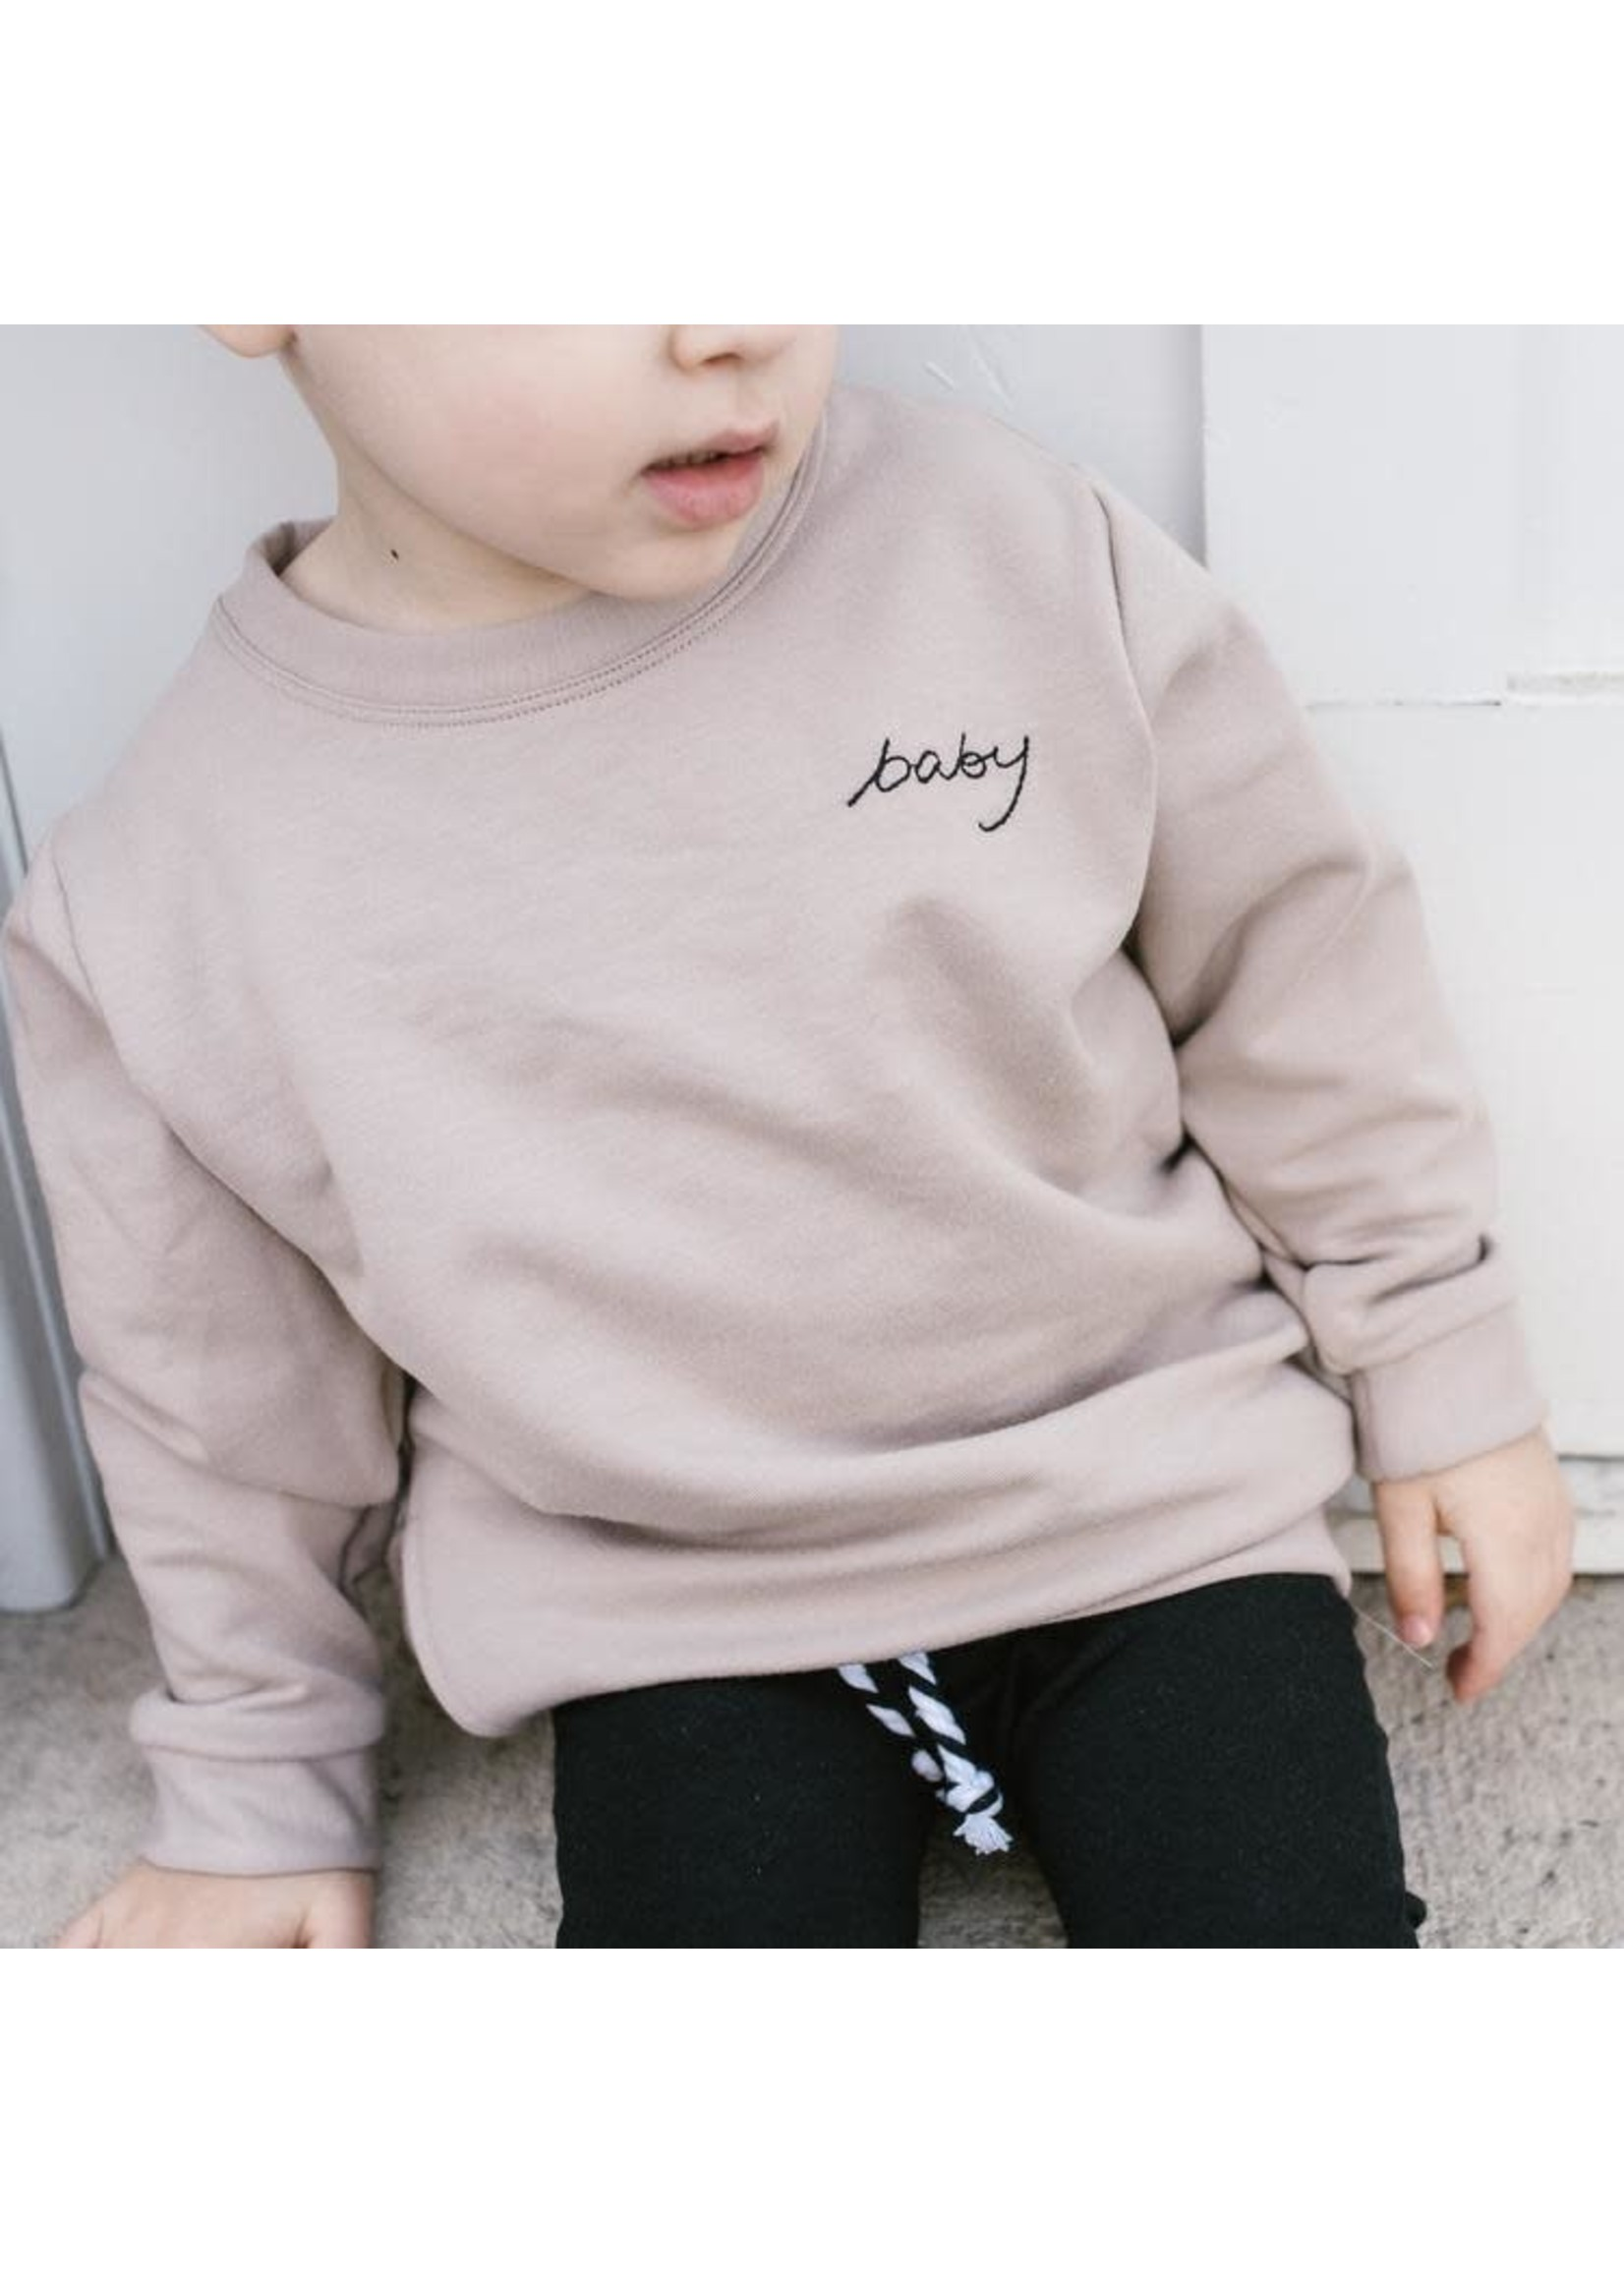 North Kinder NK baby sweater